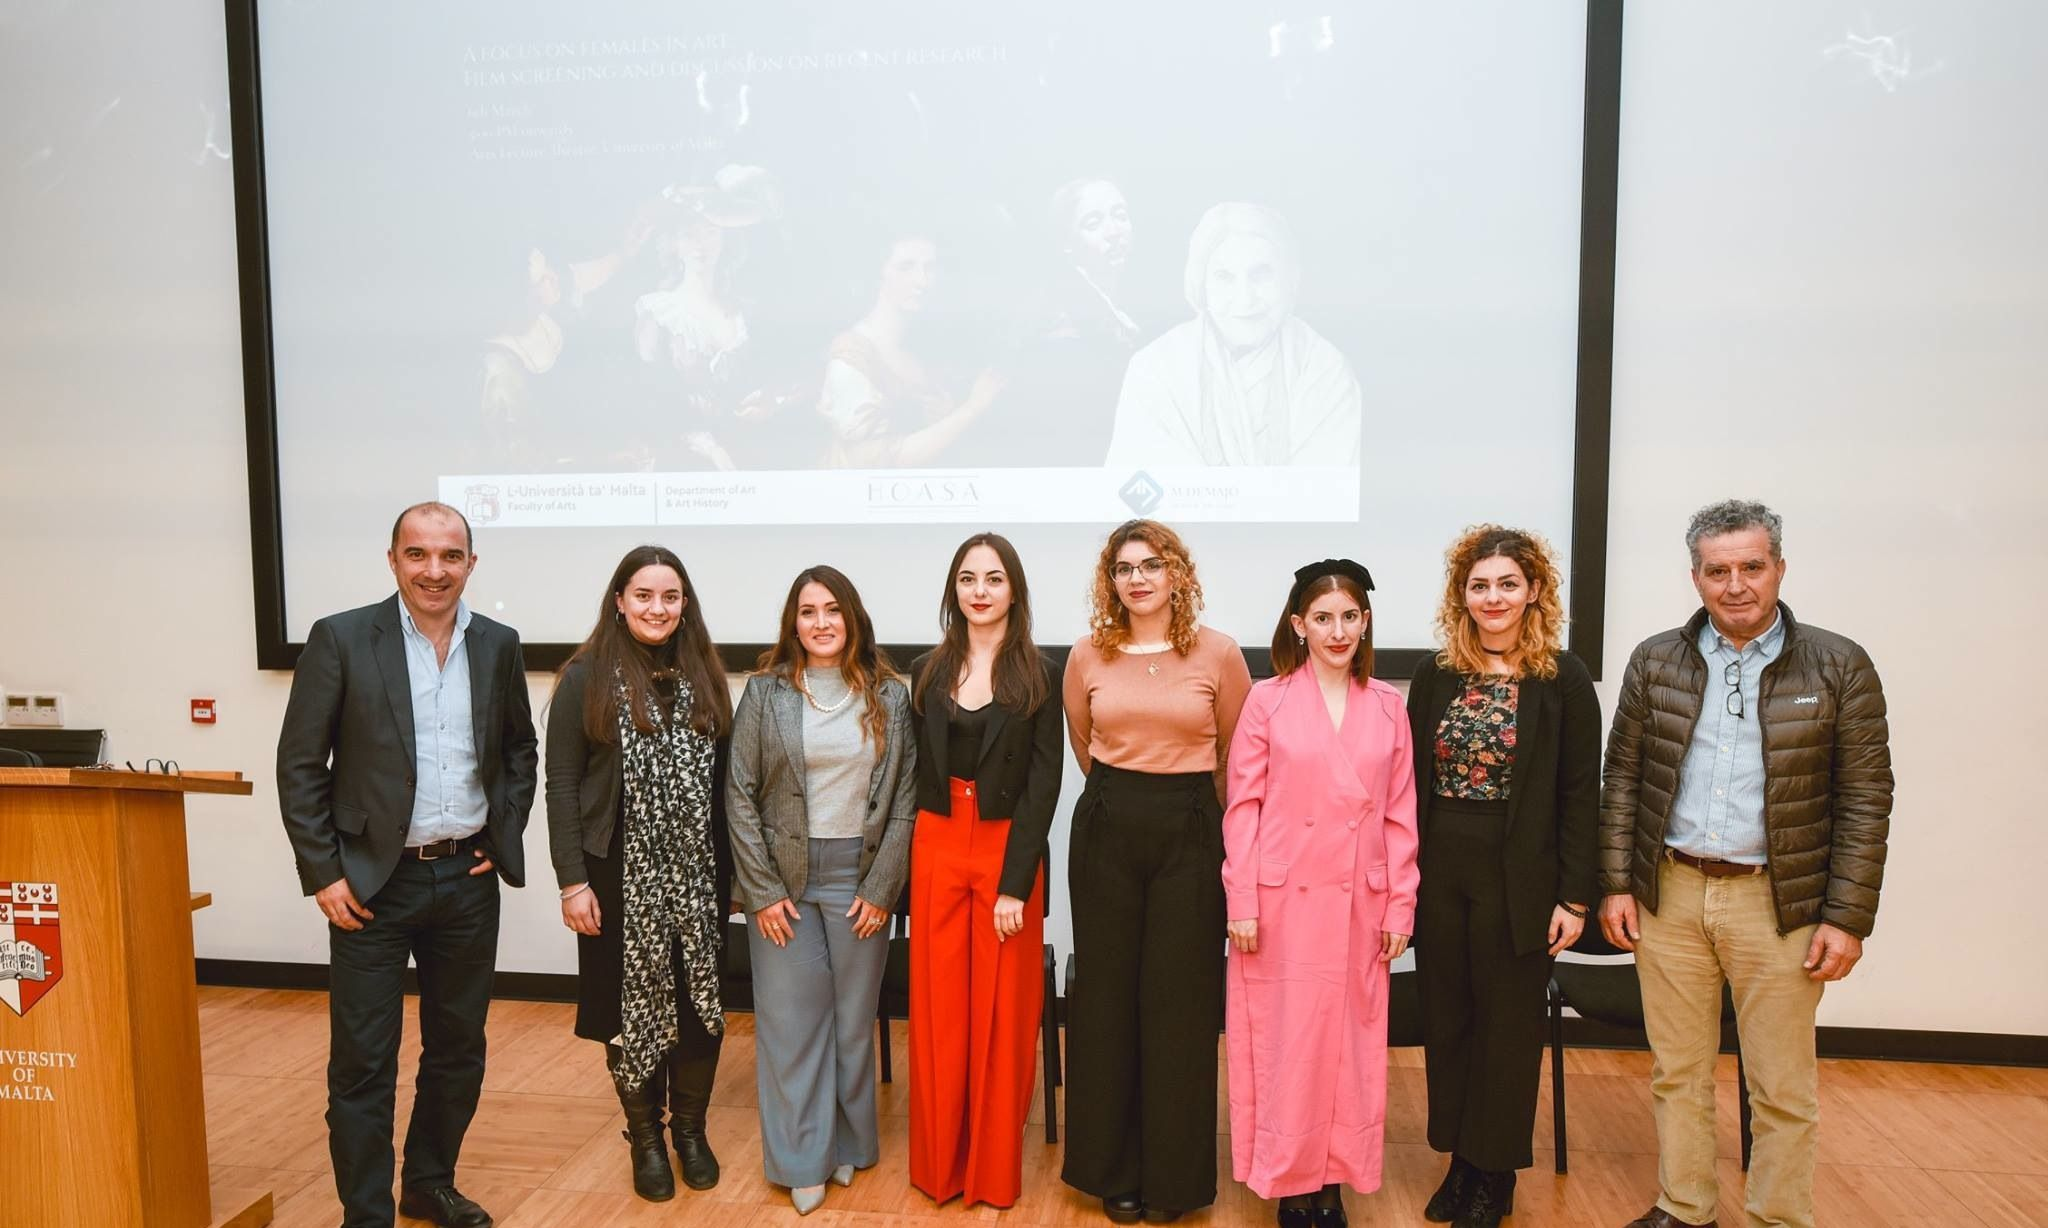 Left to right: Prof. Keith Sciberras, Ms Abigail Pace, Dr Charlene Vella, Ms Naomi Bajada Young, Ms Katrina Xuereb, Ms Maria Theuma, Ms Nadette Xuereb, Prof. Dominic Fenech